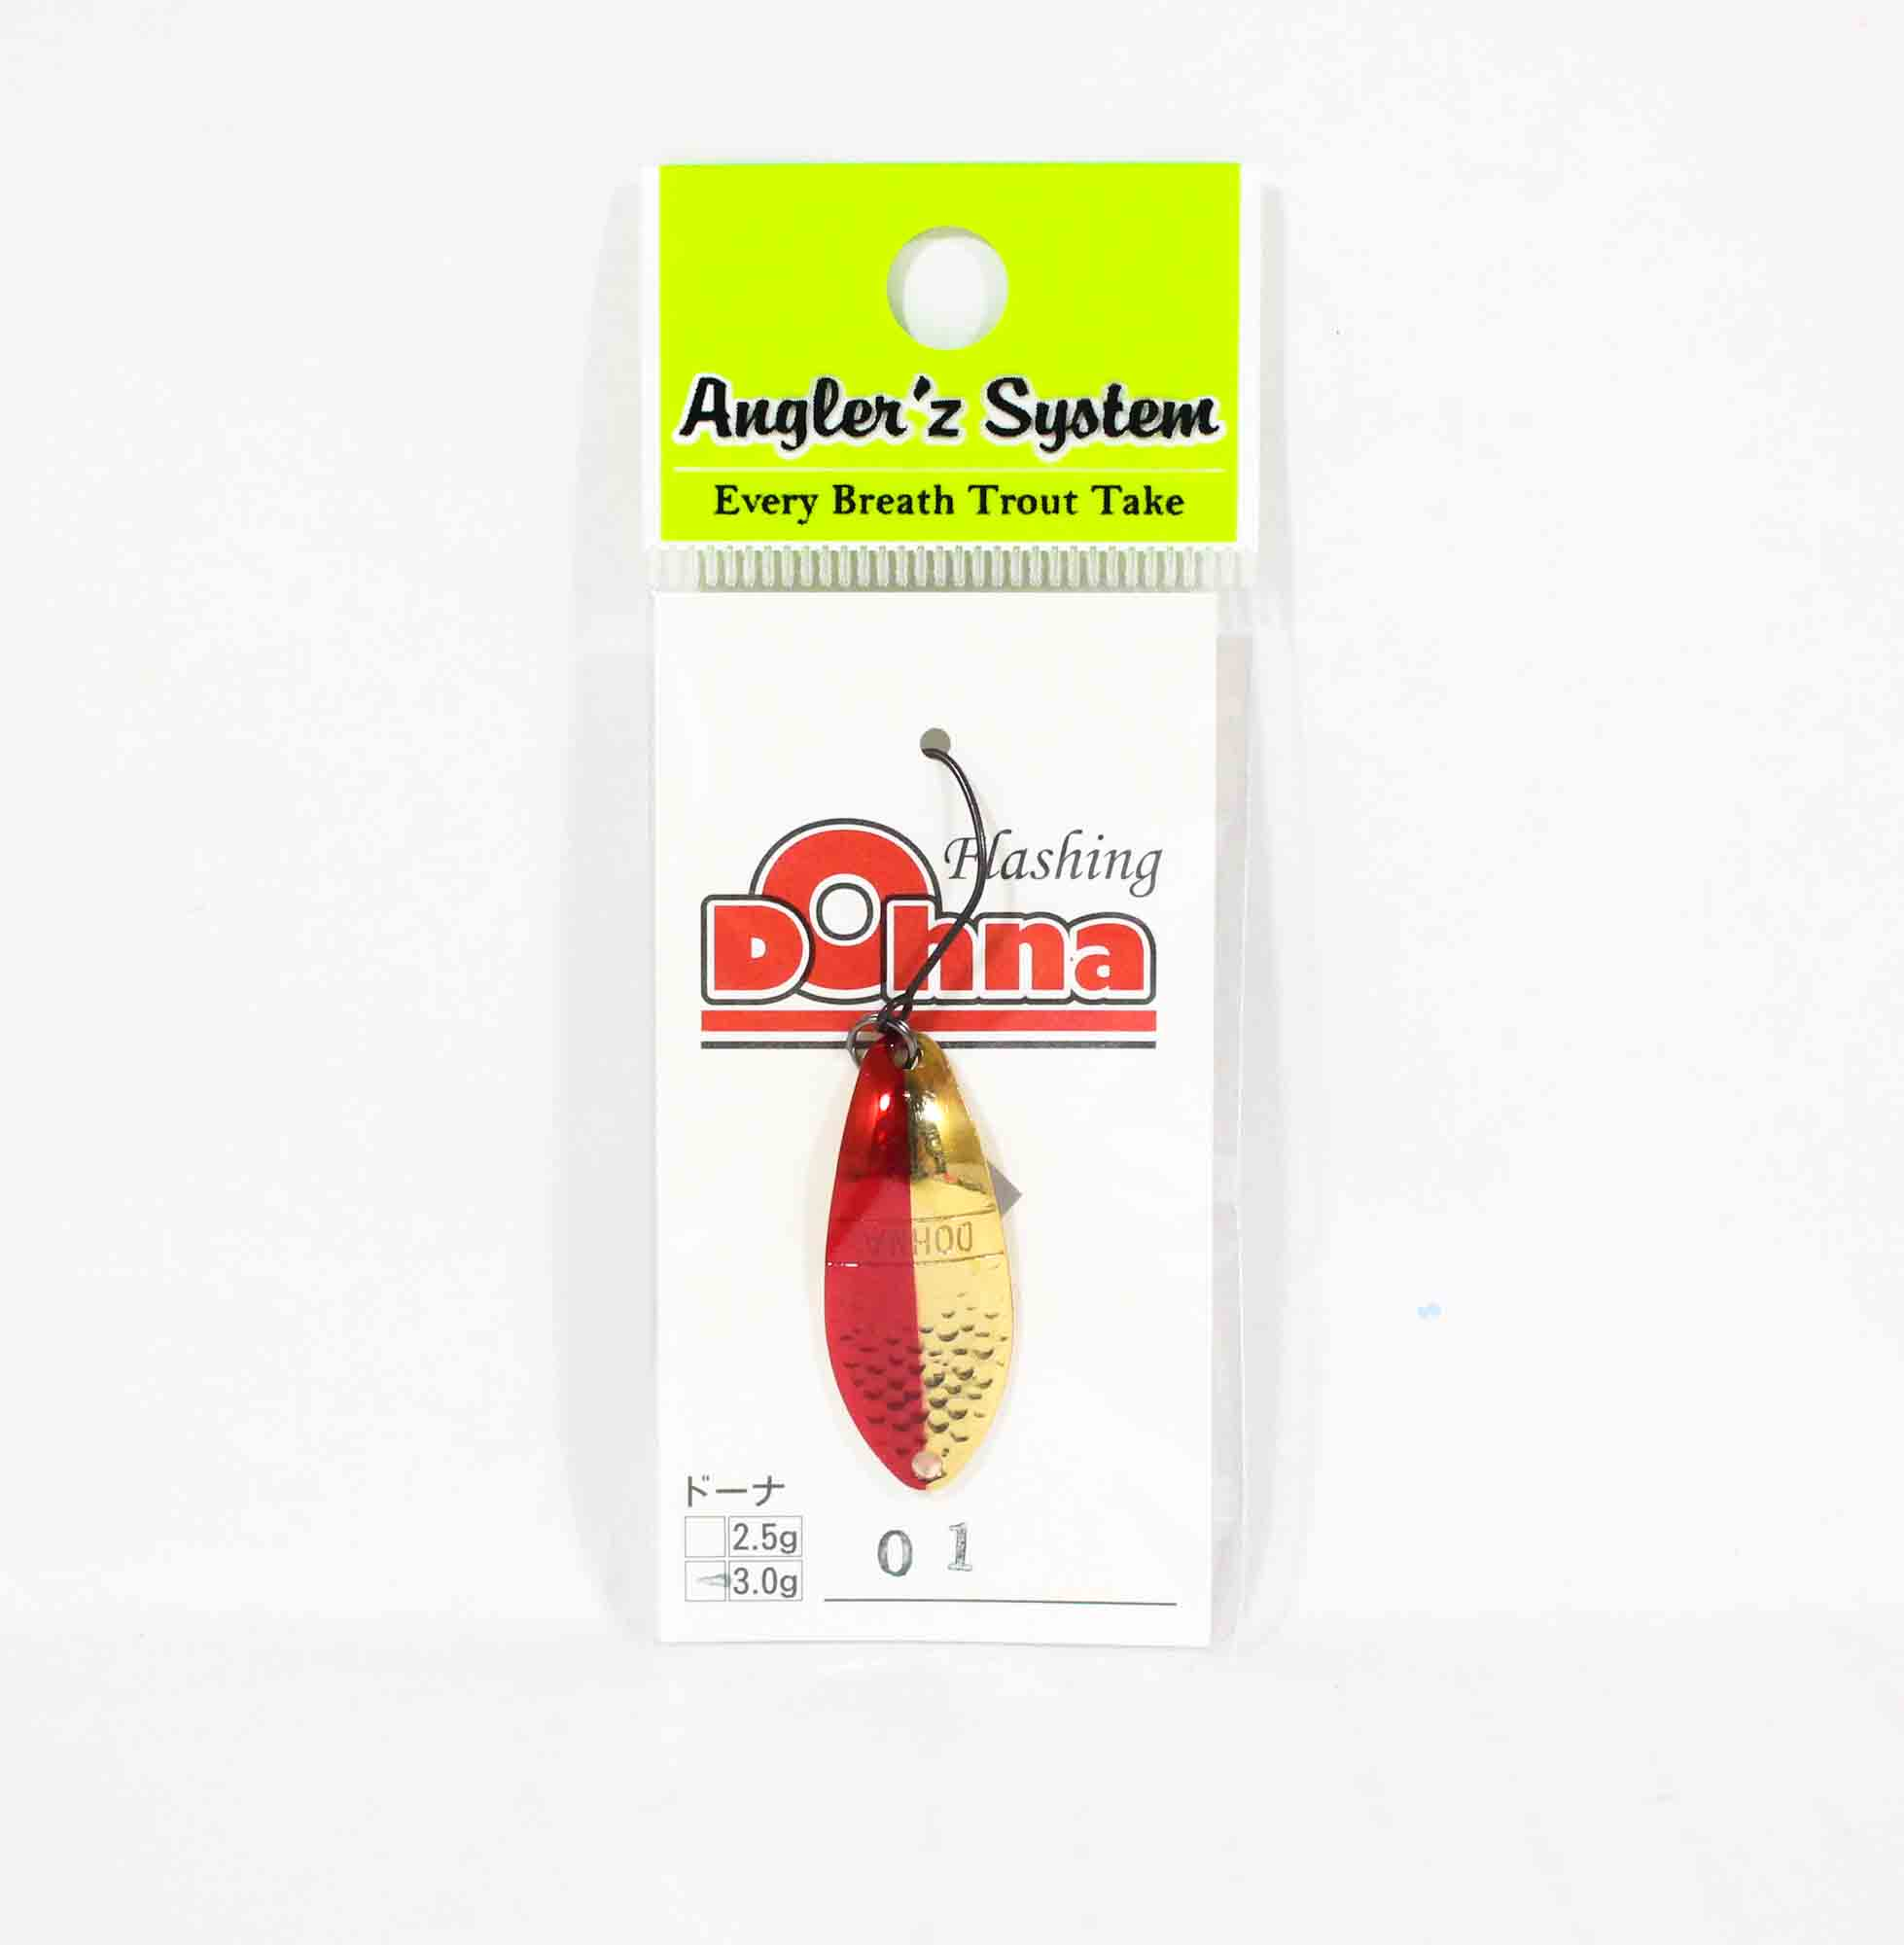 Anglers System Antem Dohna 3.0 grams Spoon Sinking Lure 01 (3438)